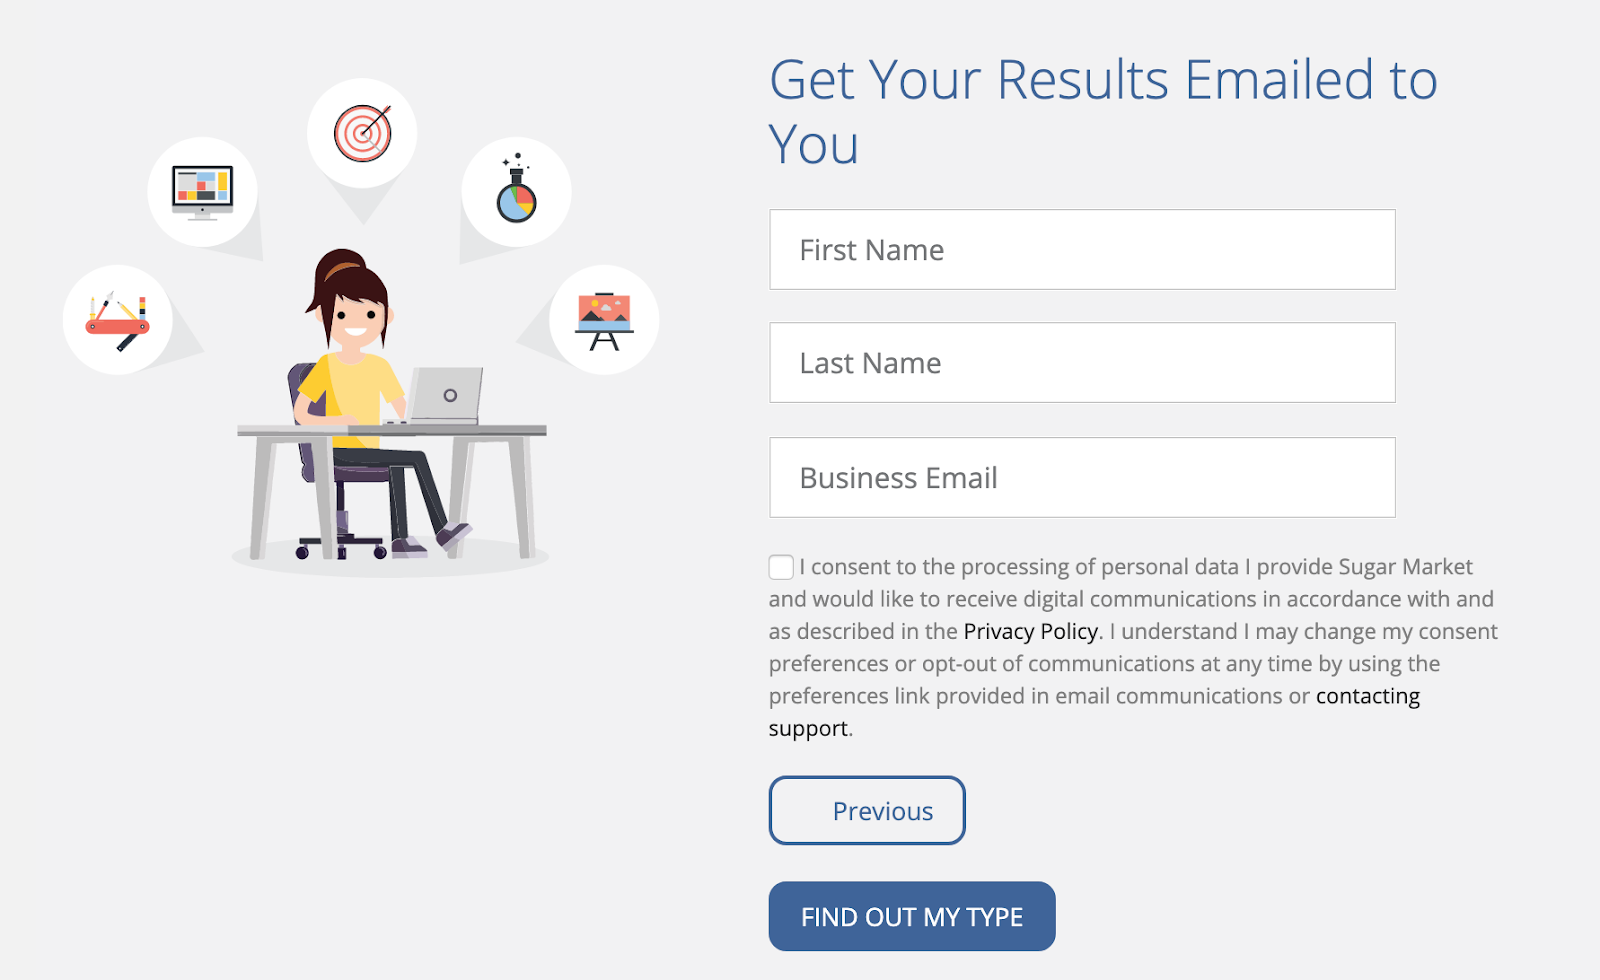 get your results emailed to you form fill